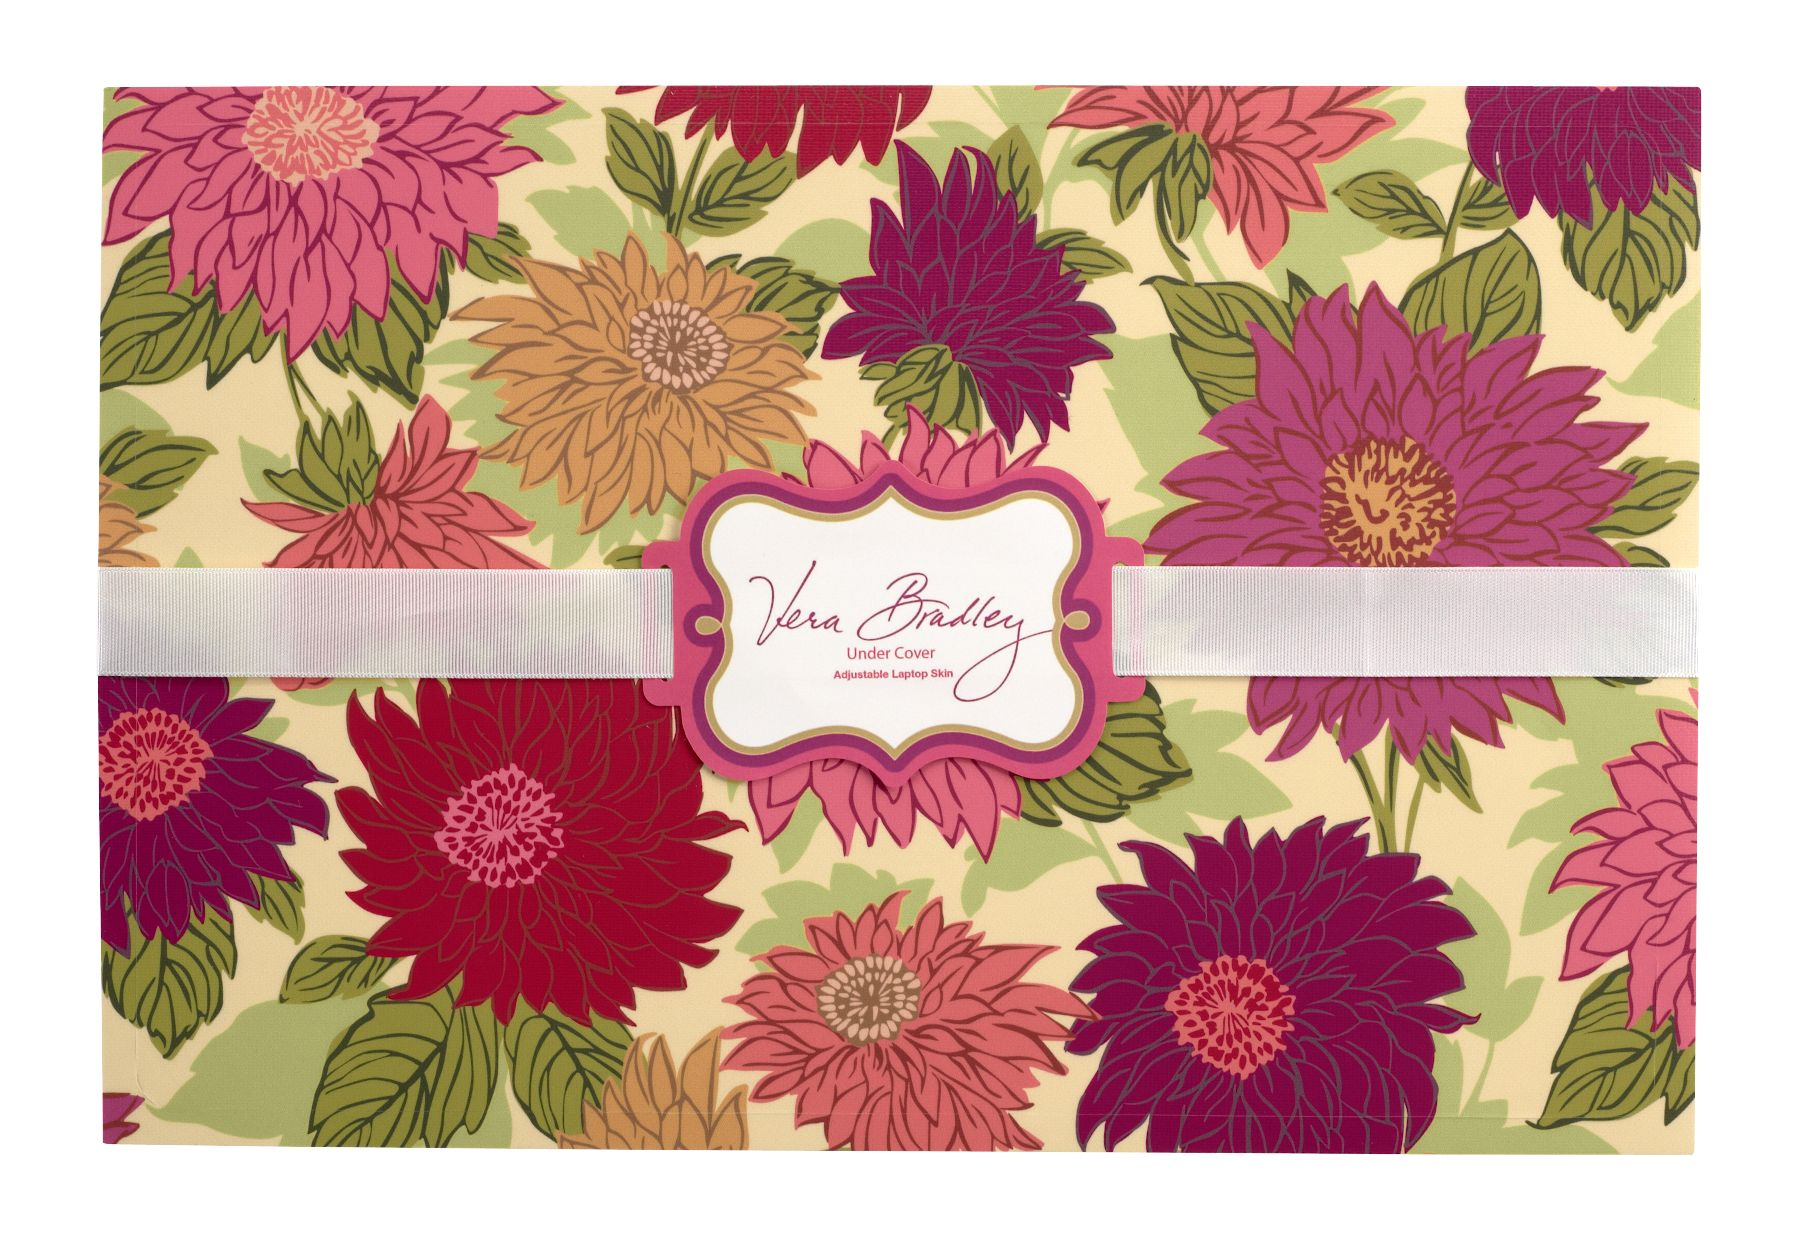 Vera Bradley Under Cover Laptop Skin in Hello Dahlia